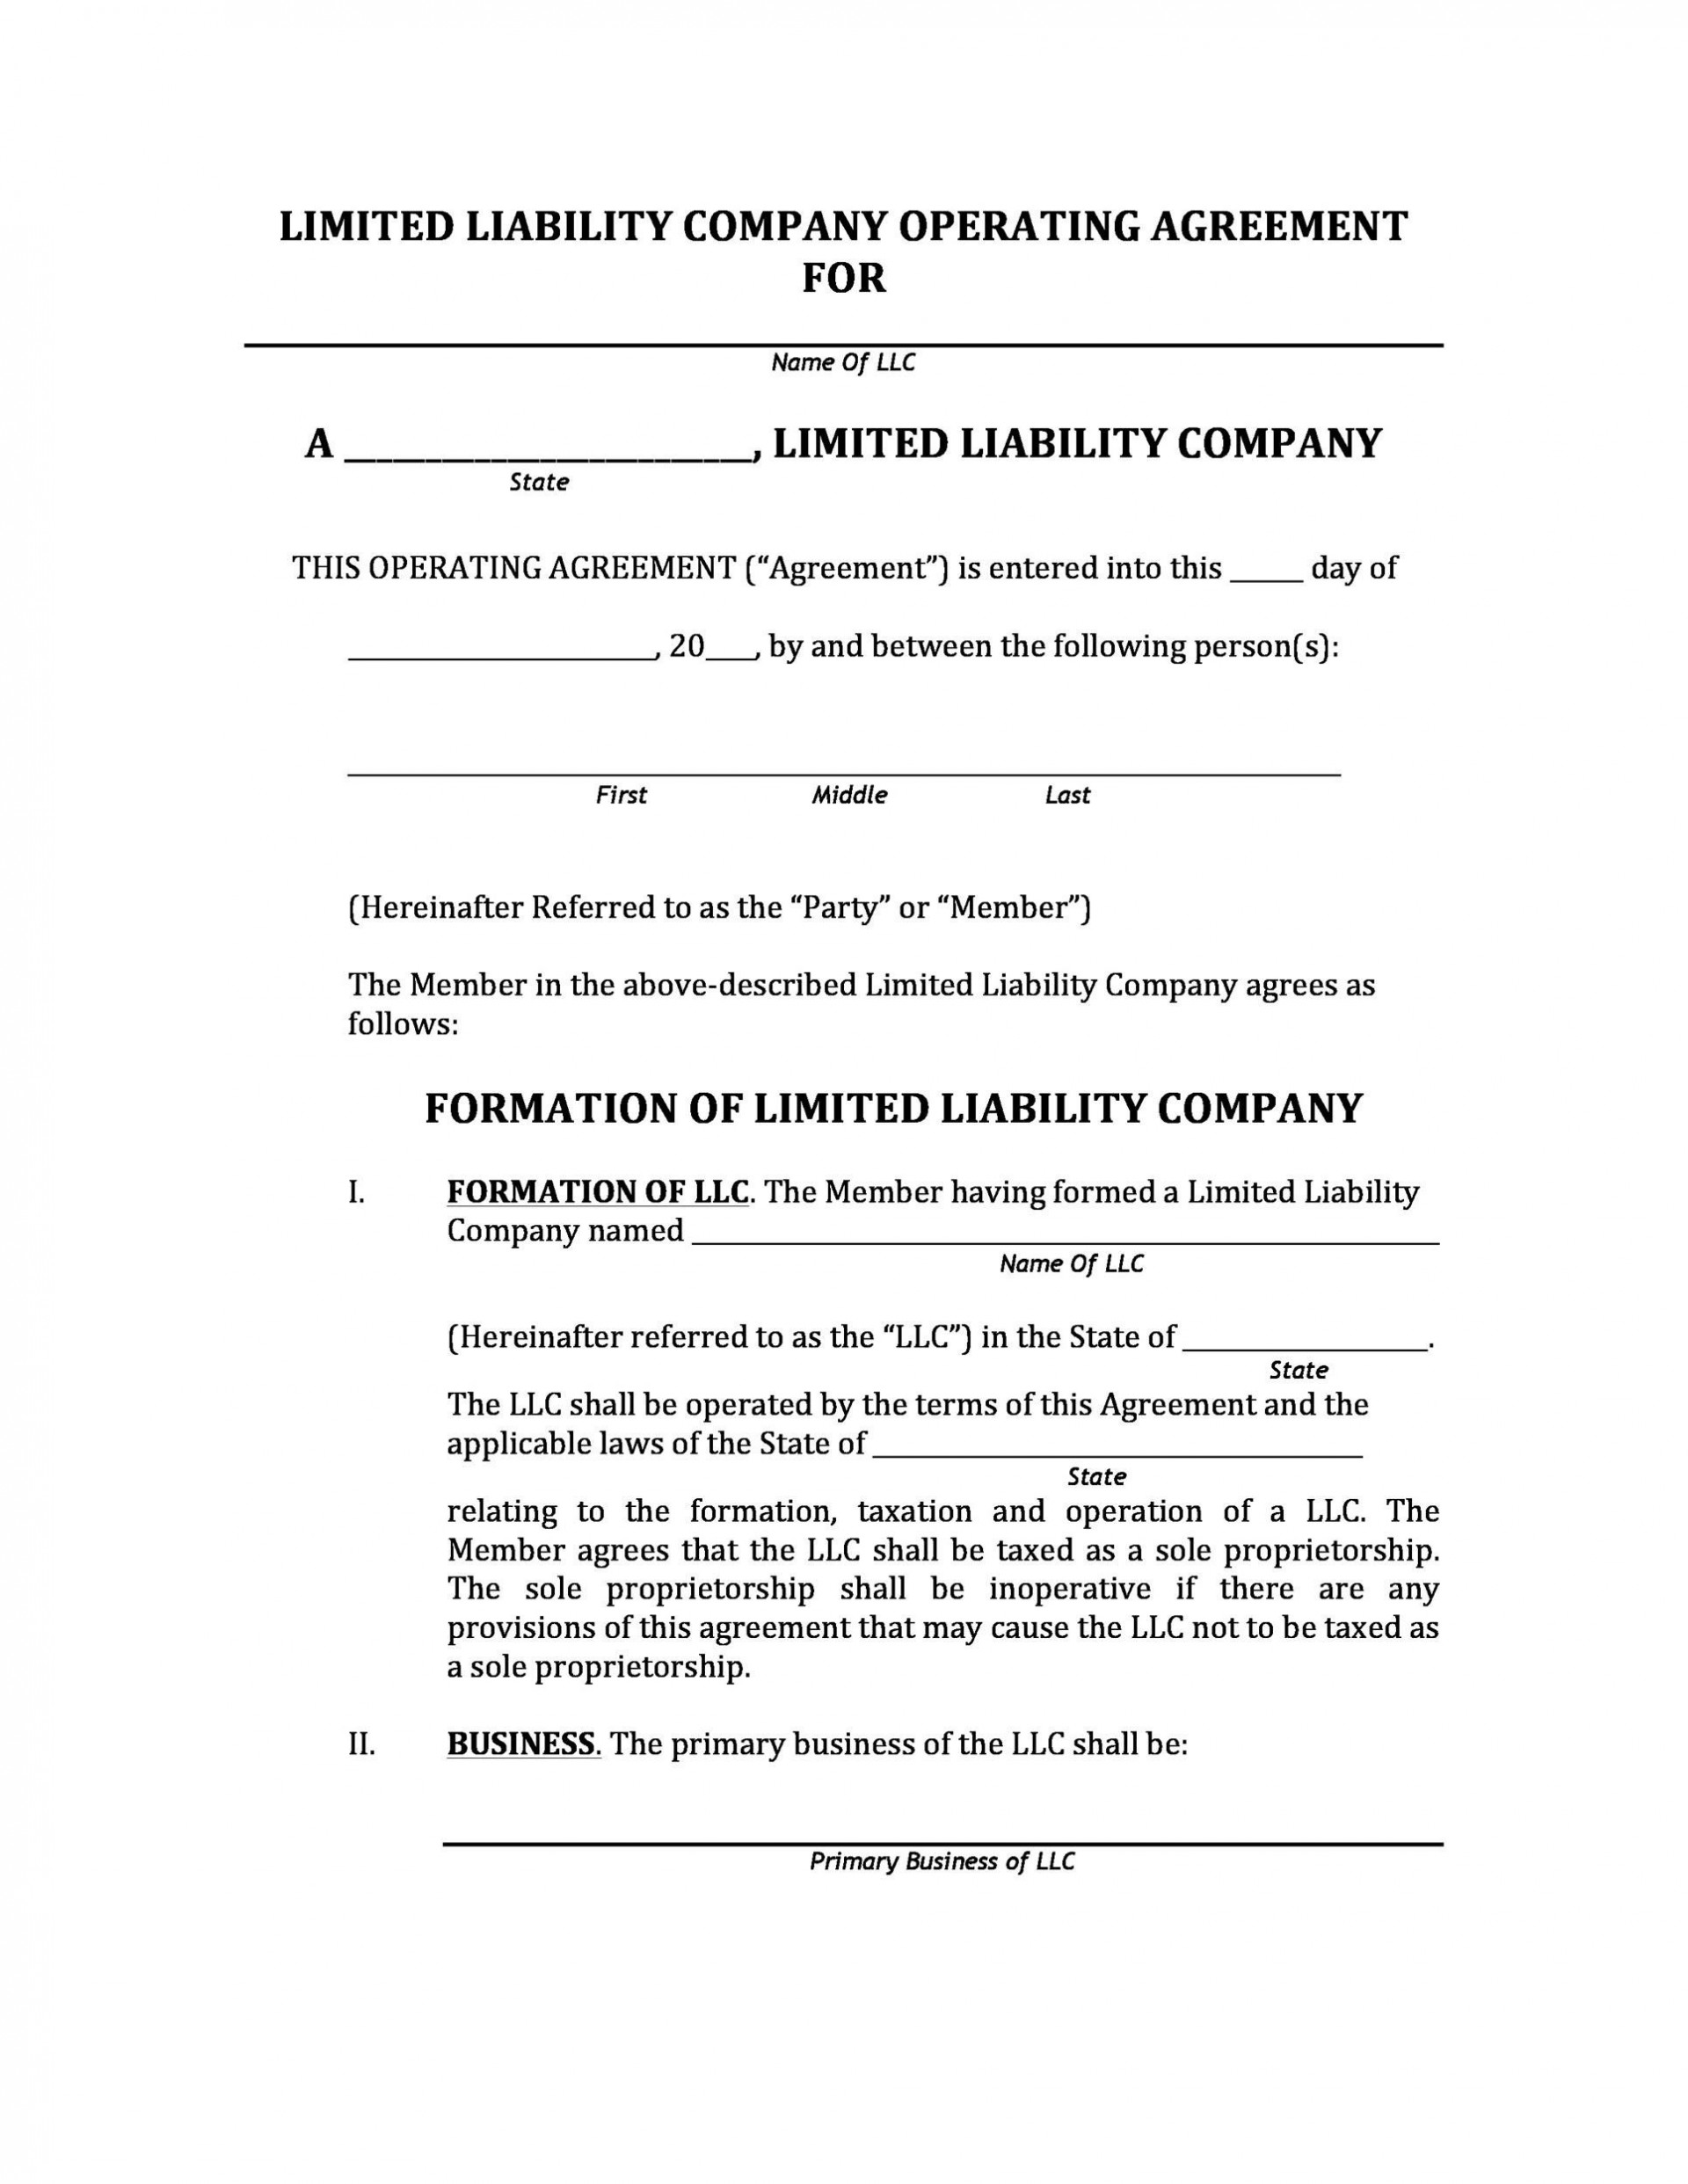 008 Awful Operating Agreement Template For Llc Design  Form Florida Texa1920